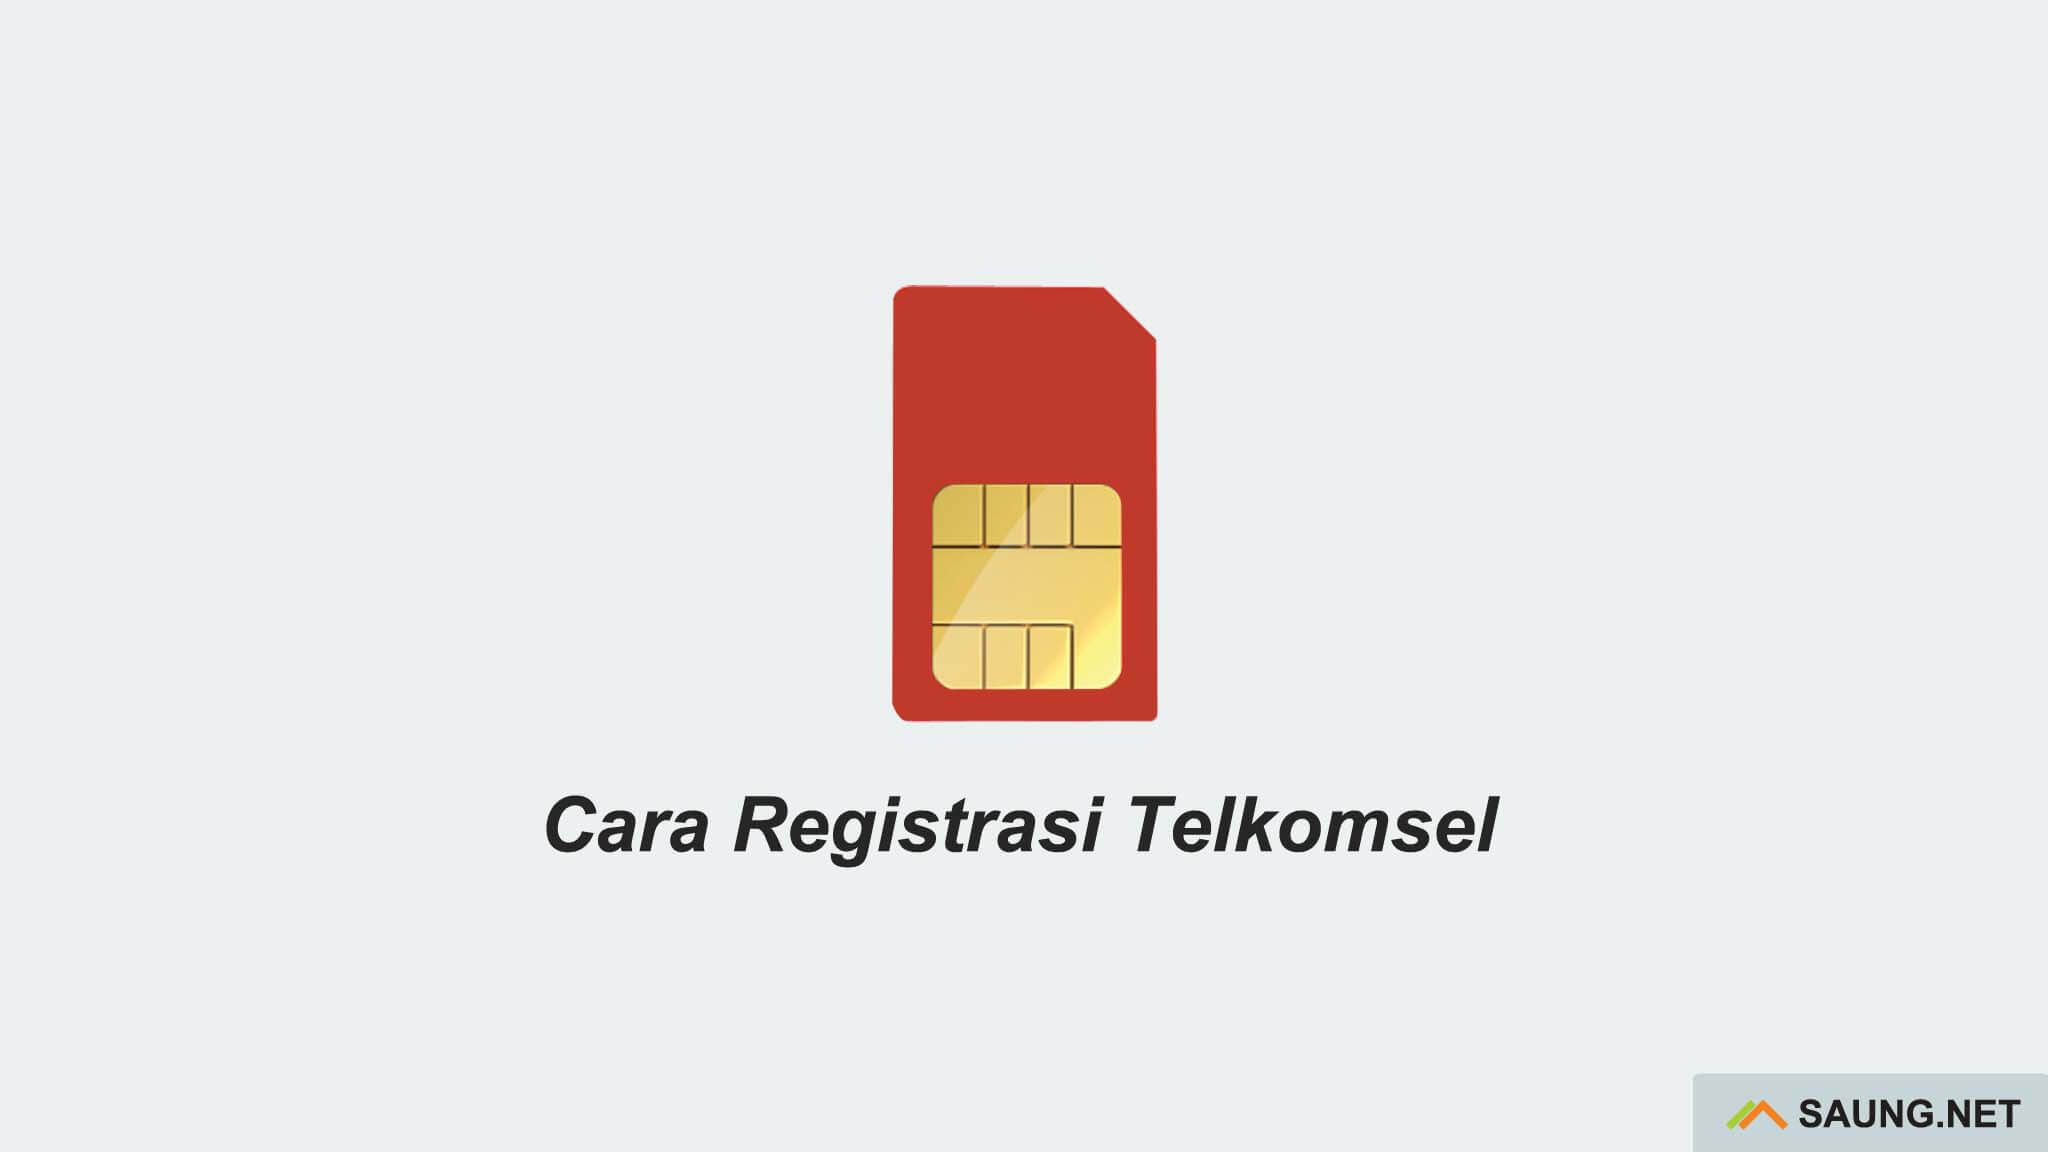 cara registrasi telkomsel